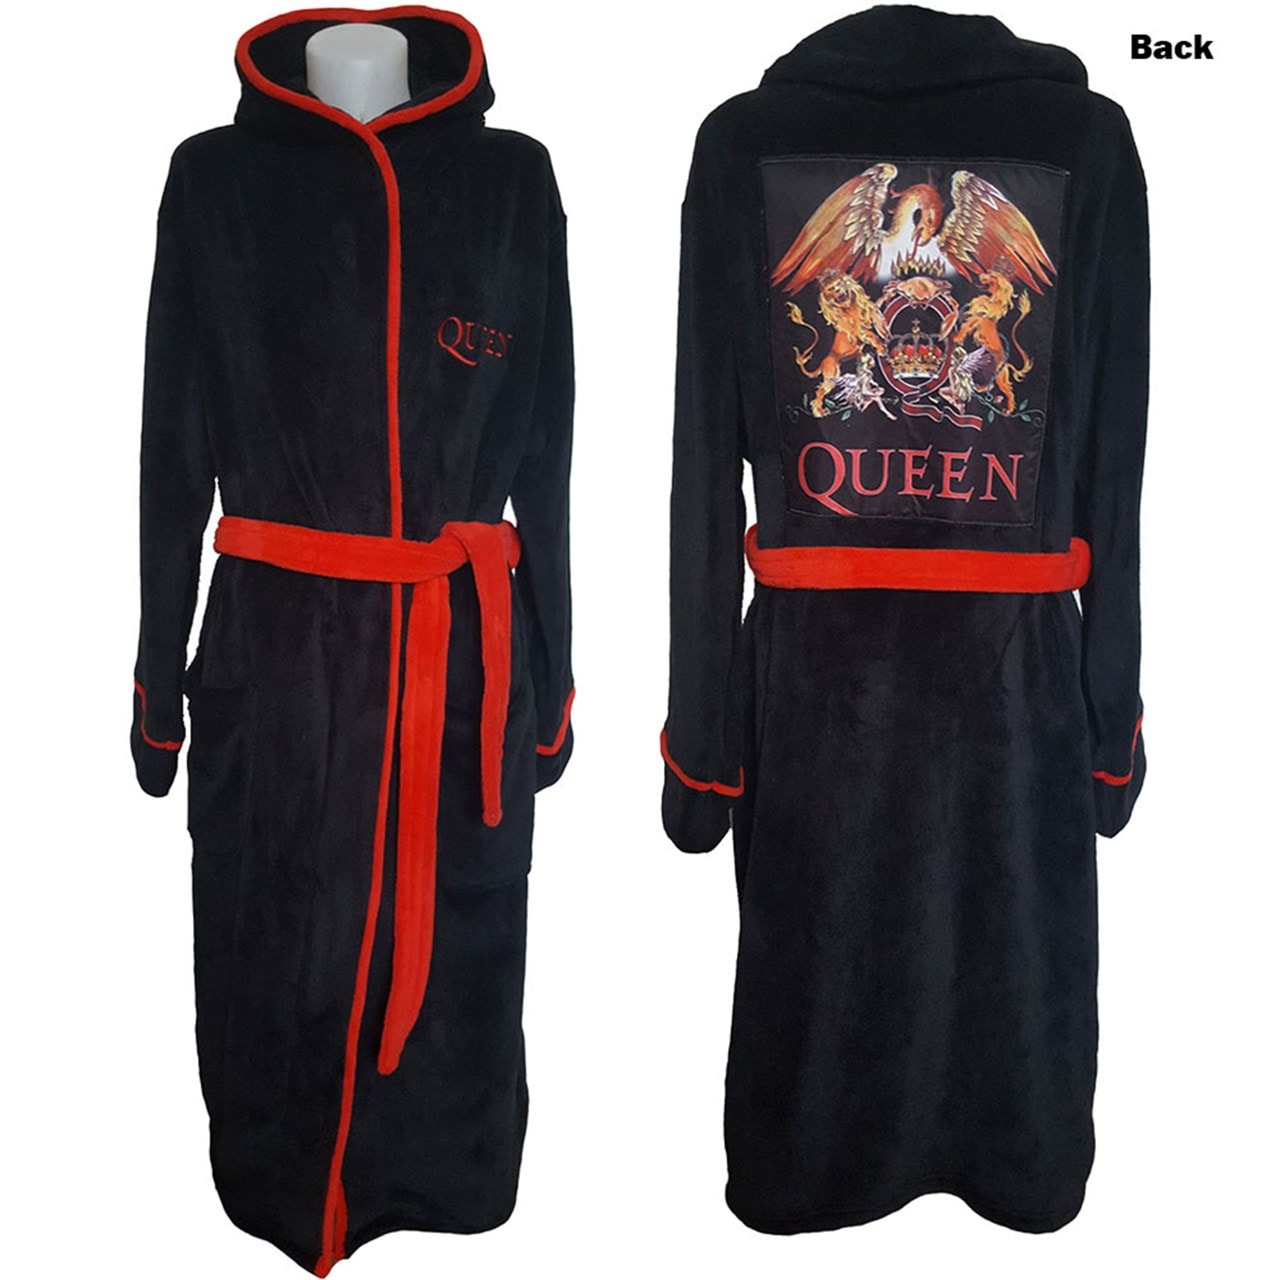 Queen: Classic Crest Bathrobe (Small) - 1